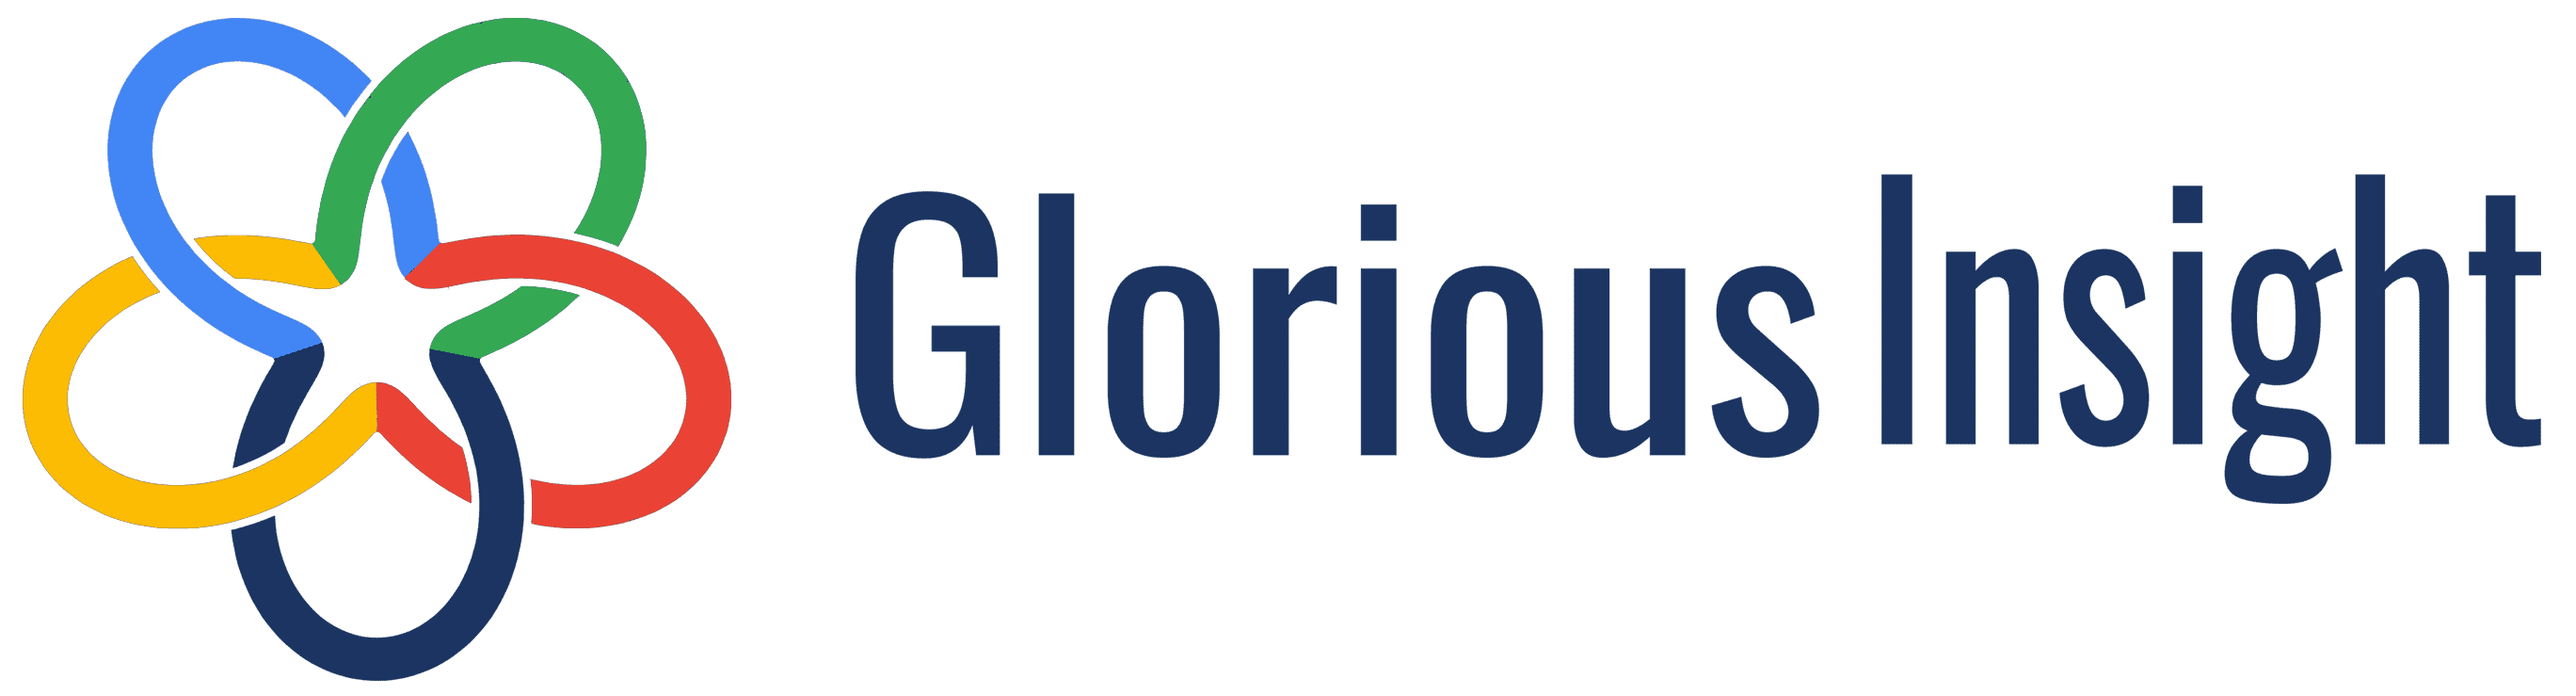 Glorious Insight Pvt Ltd - Robotic Process Automation company logo